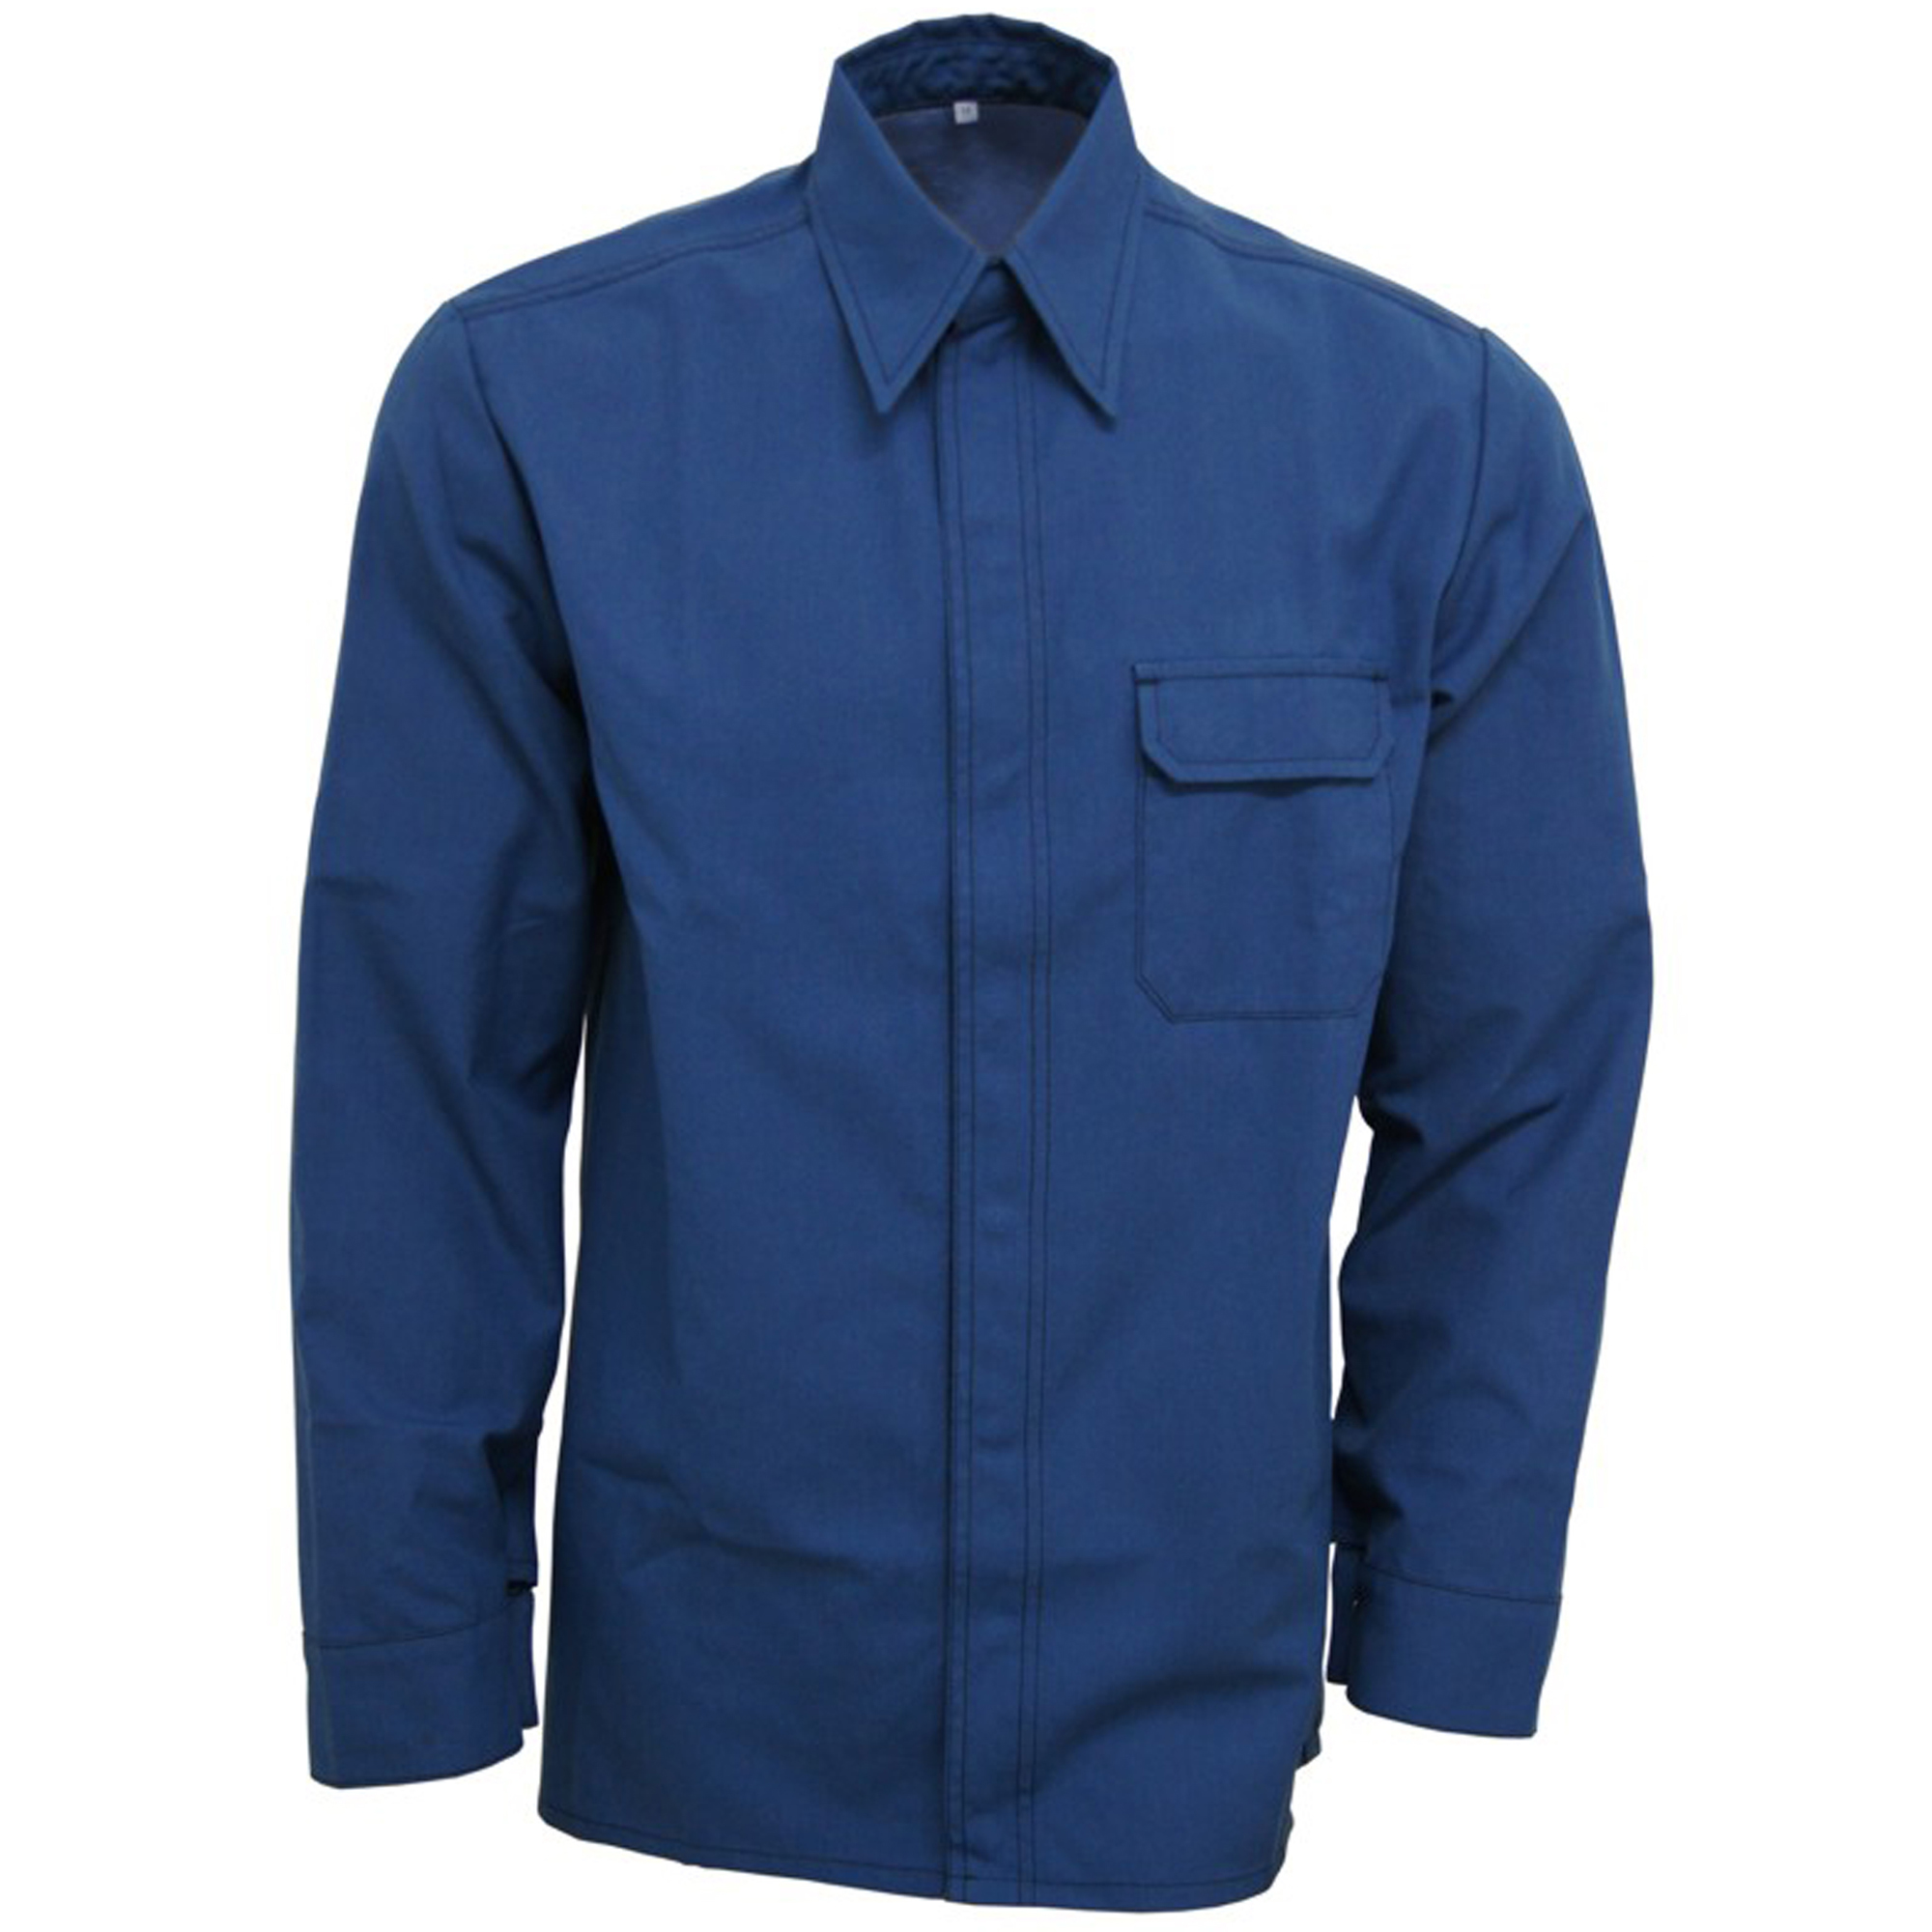 BSD LIGHT PROTECTIVE ARC FLASH SHIRT - Class 1, 8.0 CAL/CM2